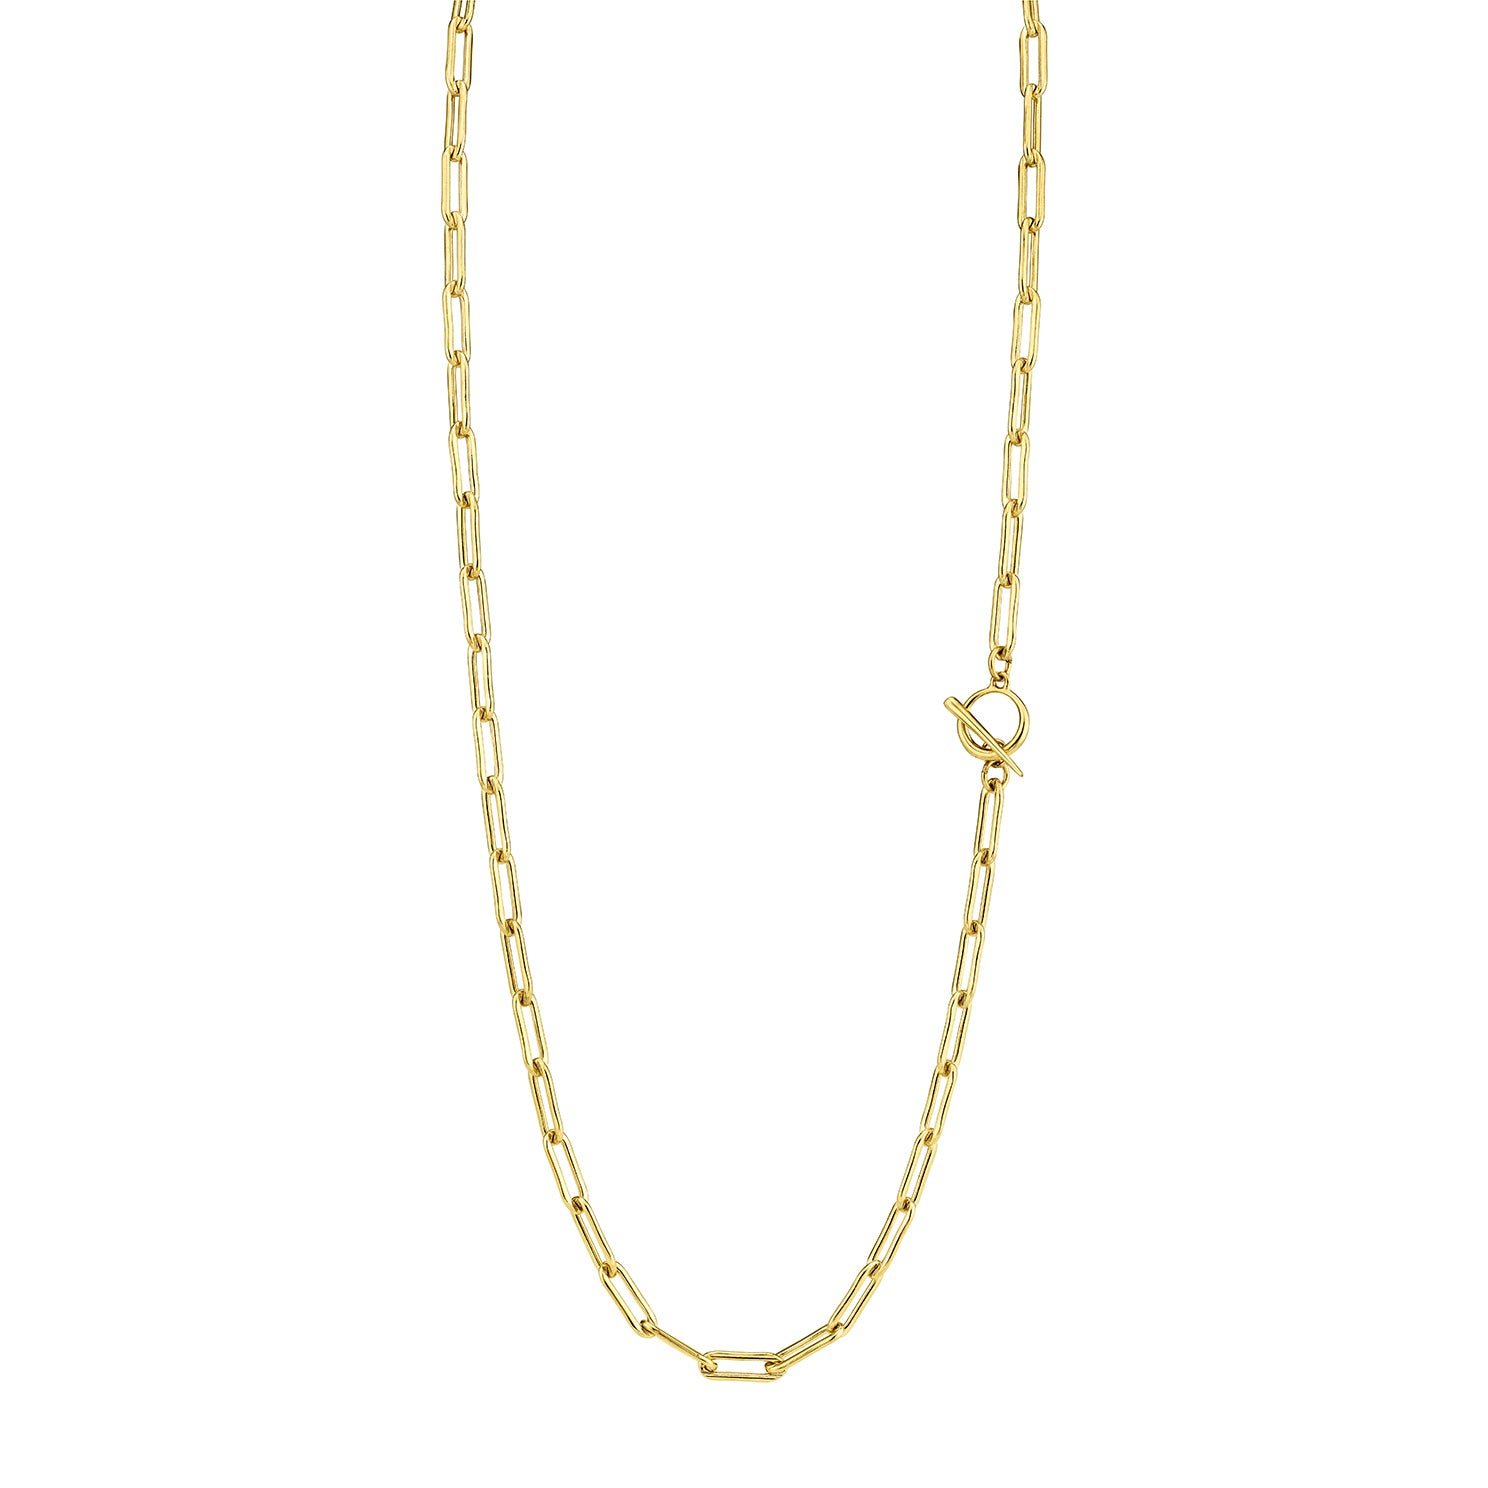 Rectangular Link Chain Necklace With Tusk Clasp